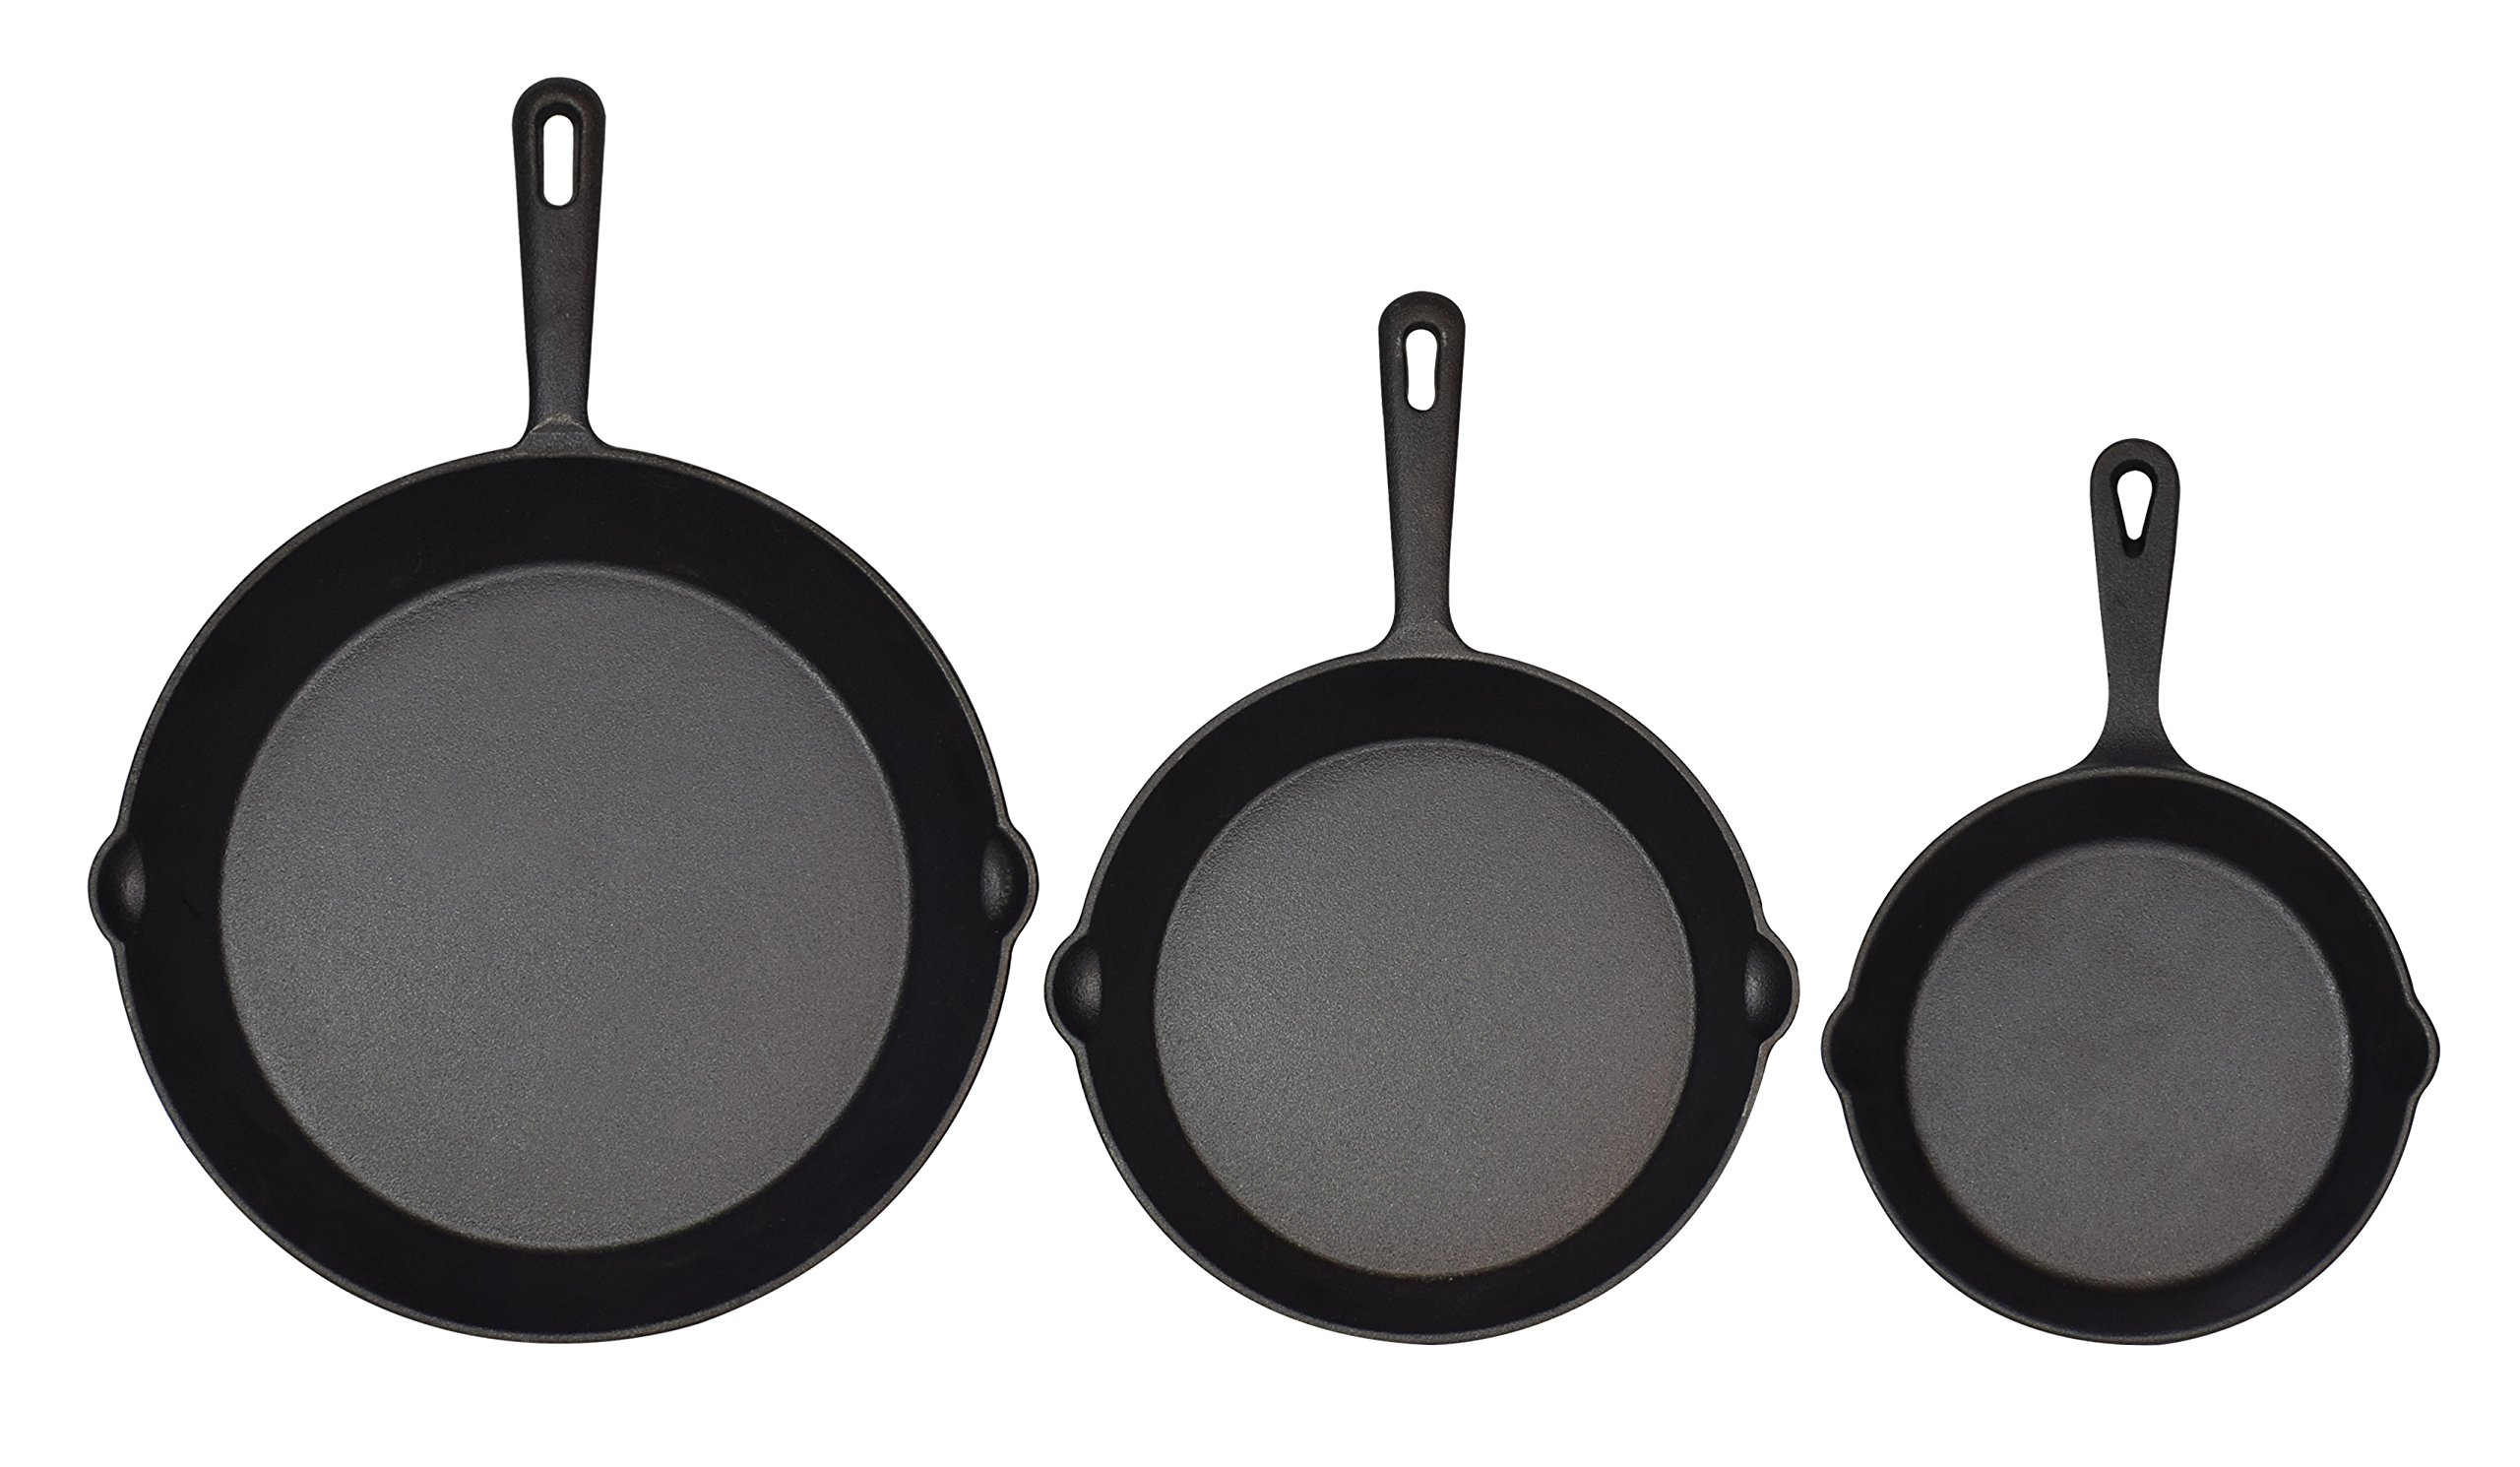 Jim Beam Set of 3 Pre Seasoned Cast Iron Skillets with Even Heat Distribution and Heat Retention - 6'' 8'' 10''